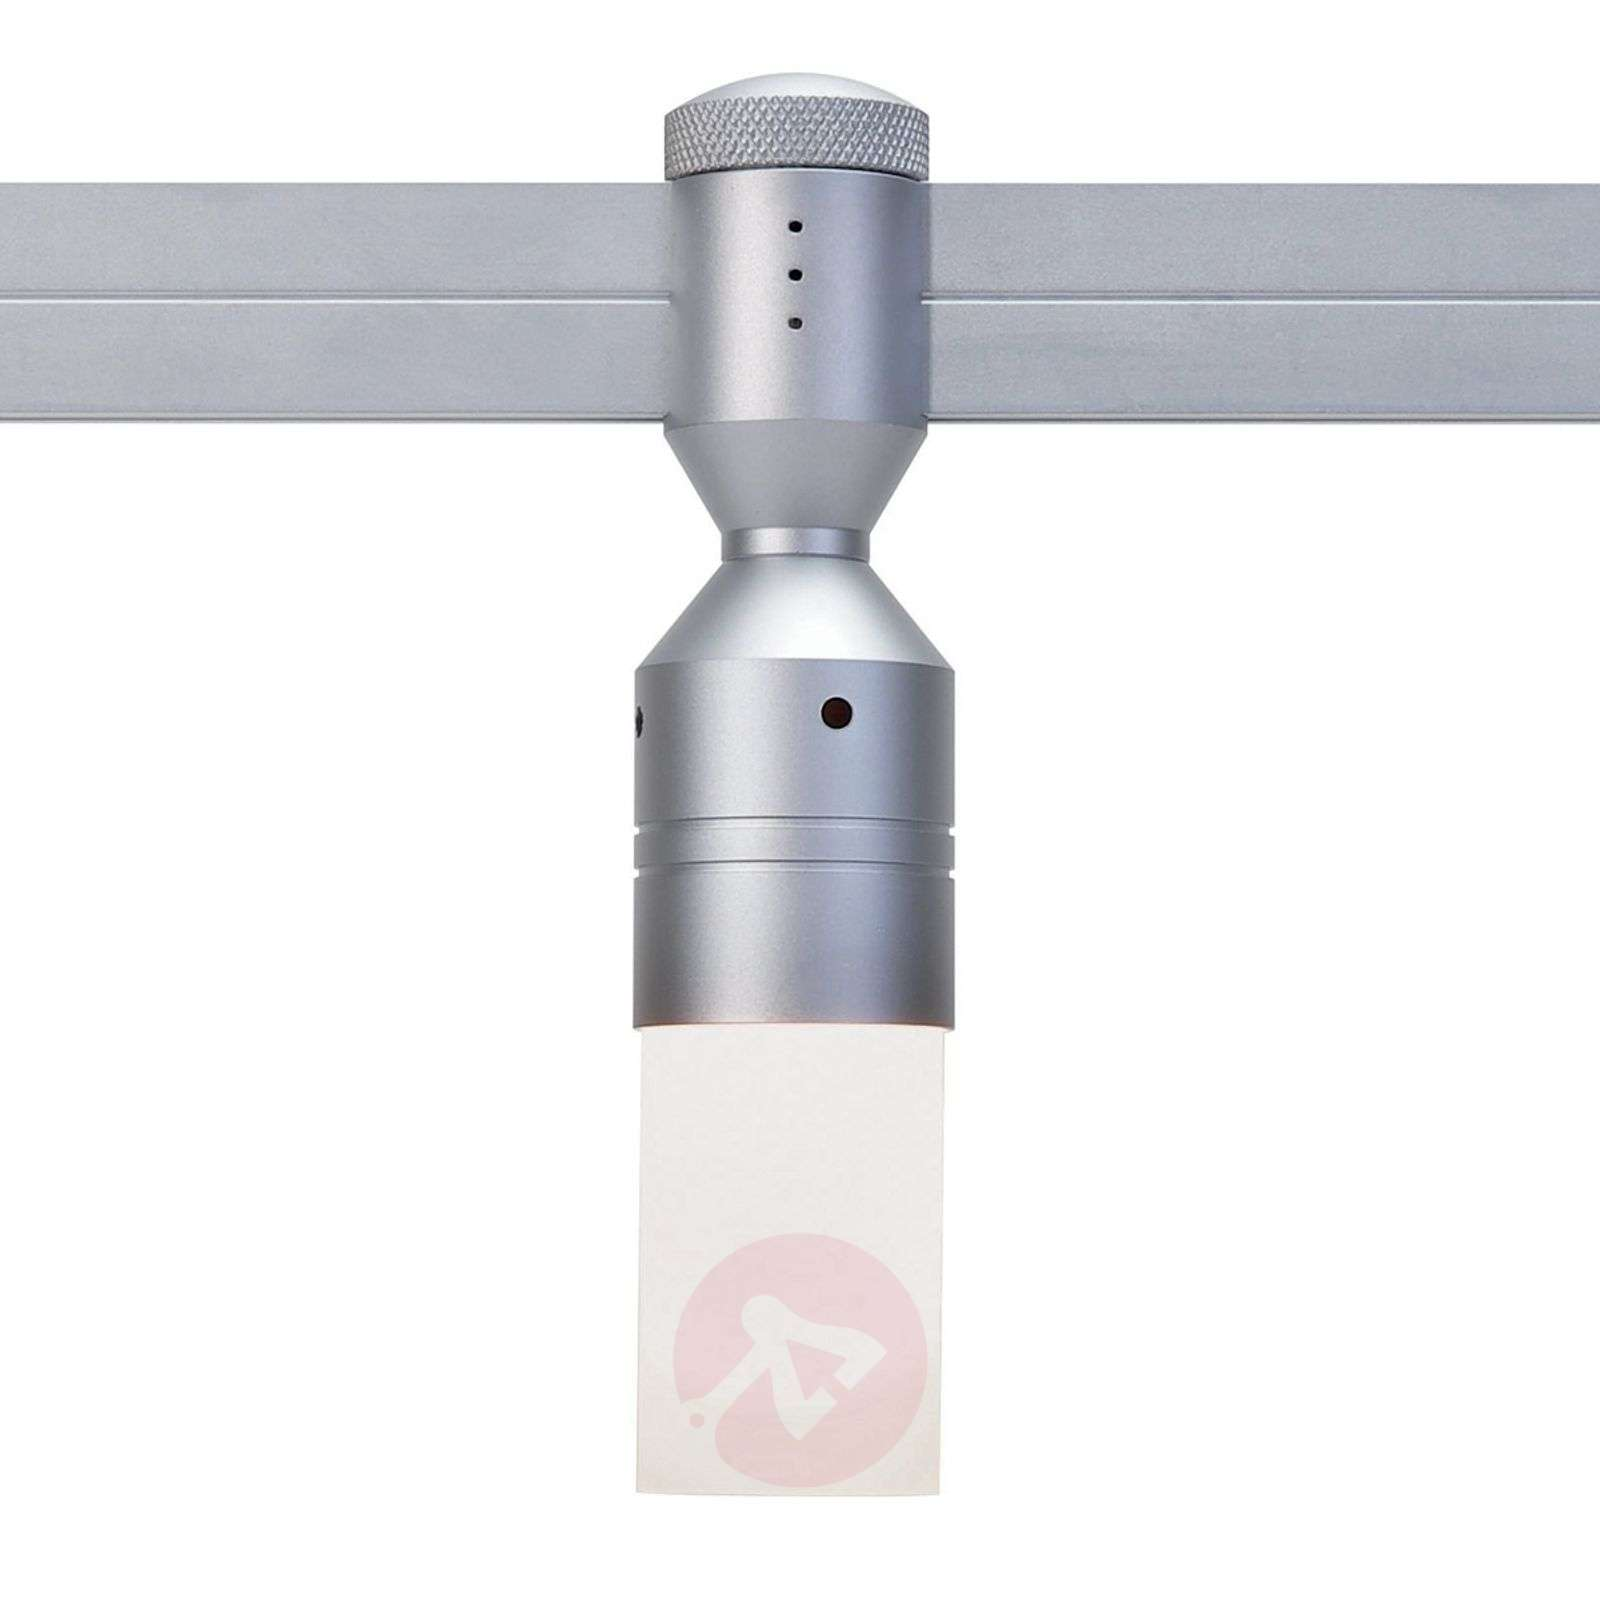 Systeemlamp MAGIC voor CHECK-IN rail-7250256-01